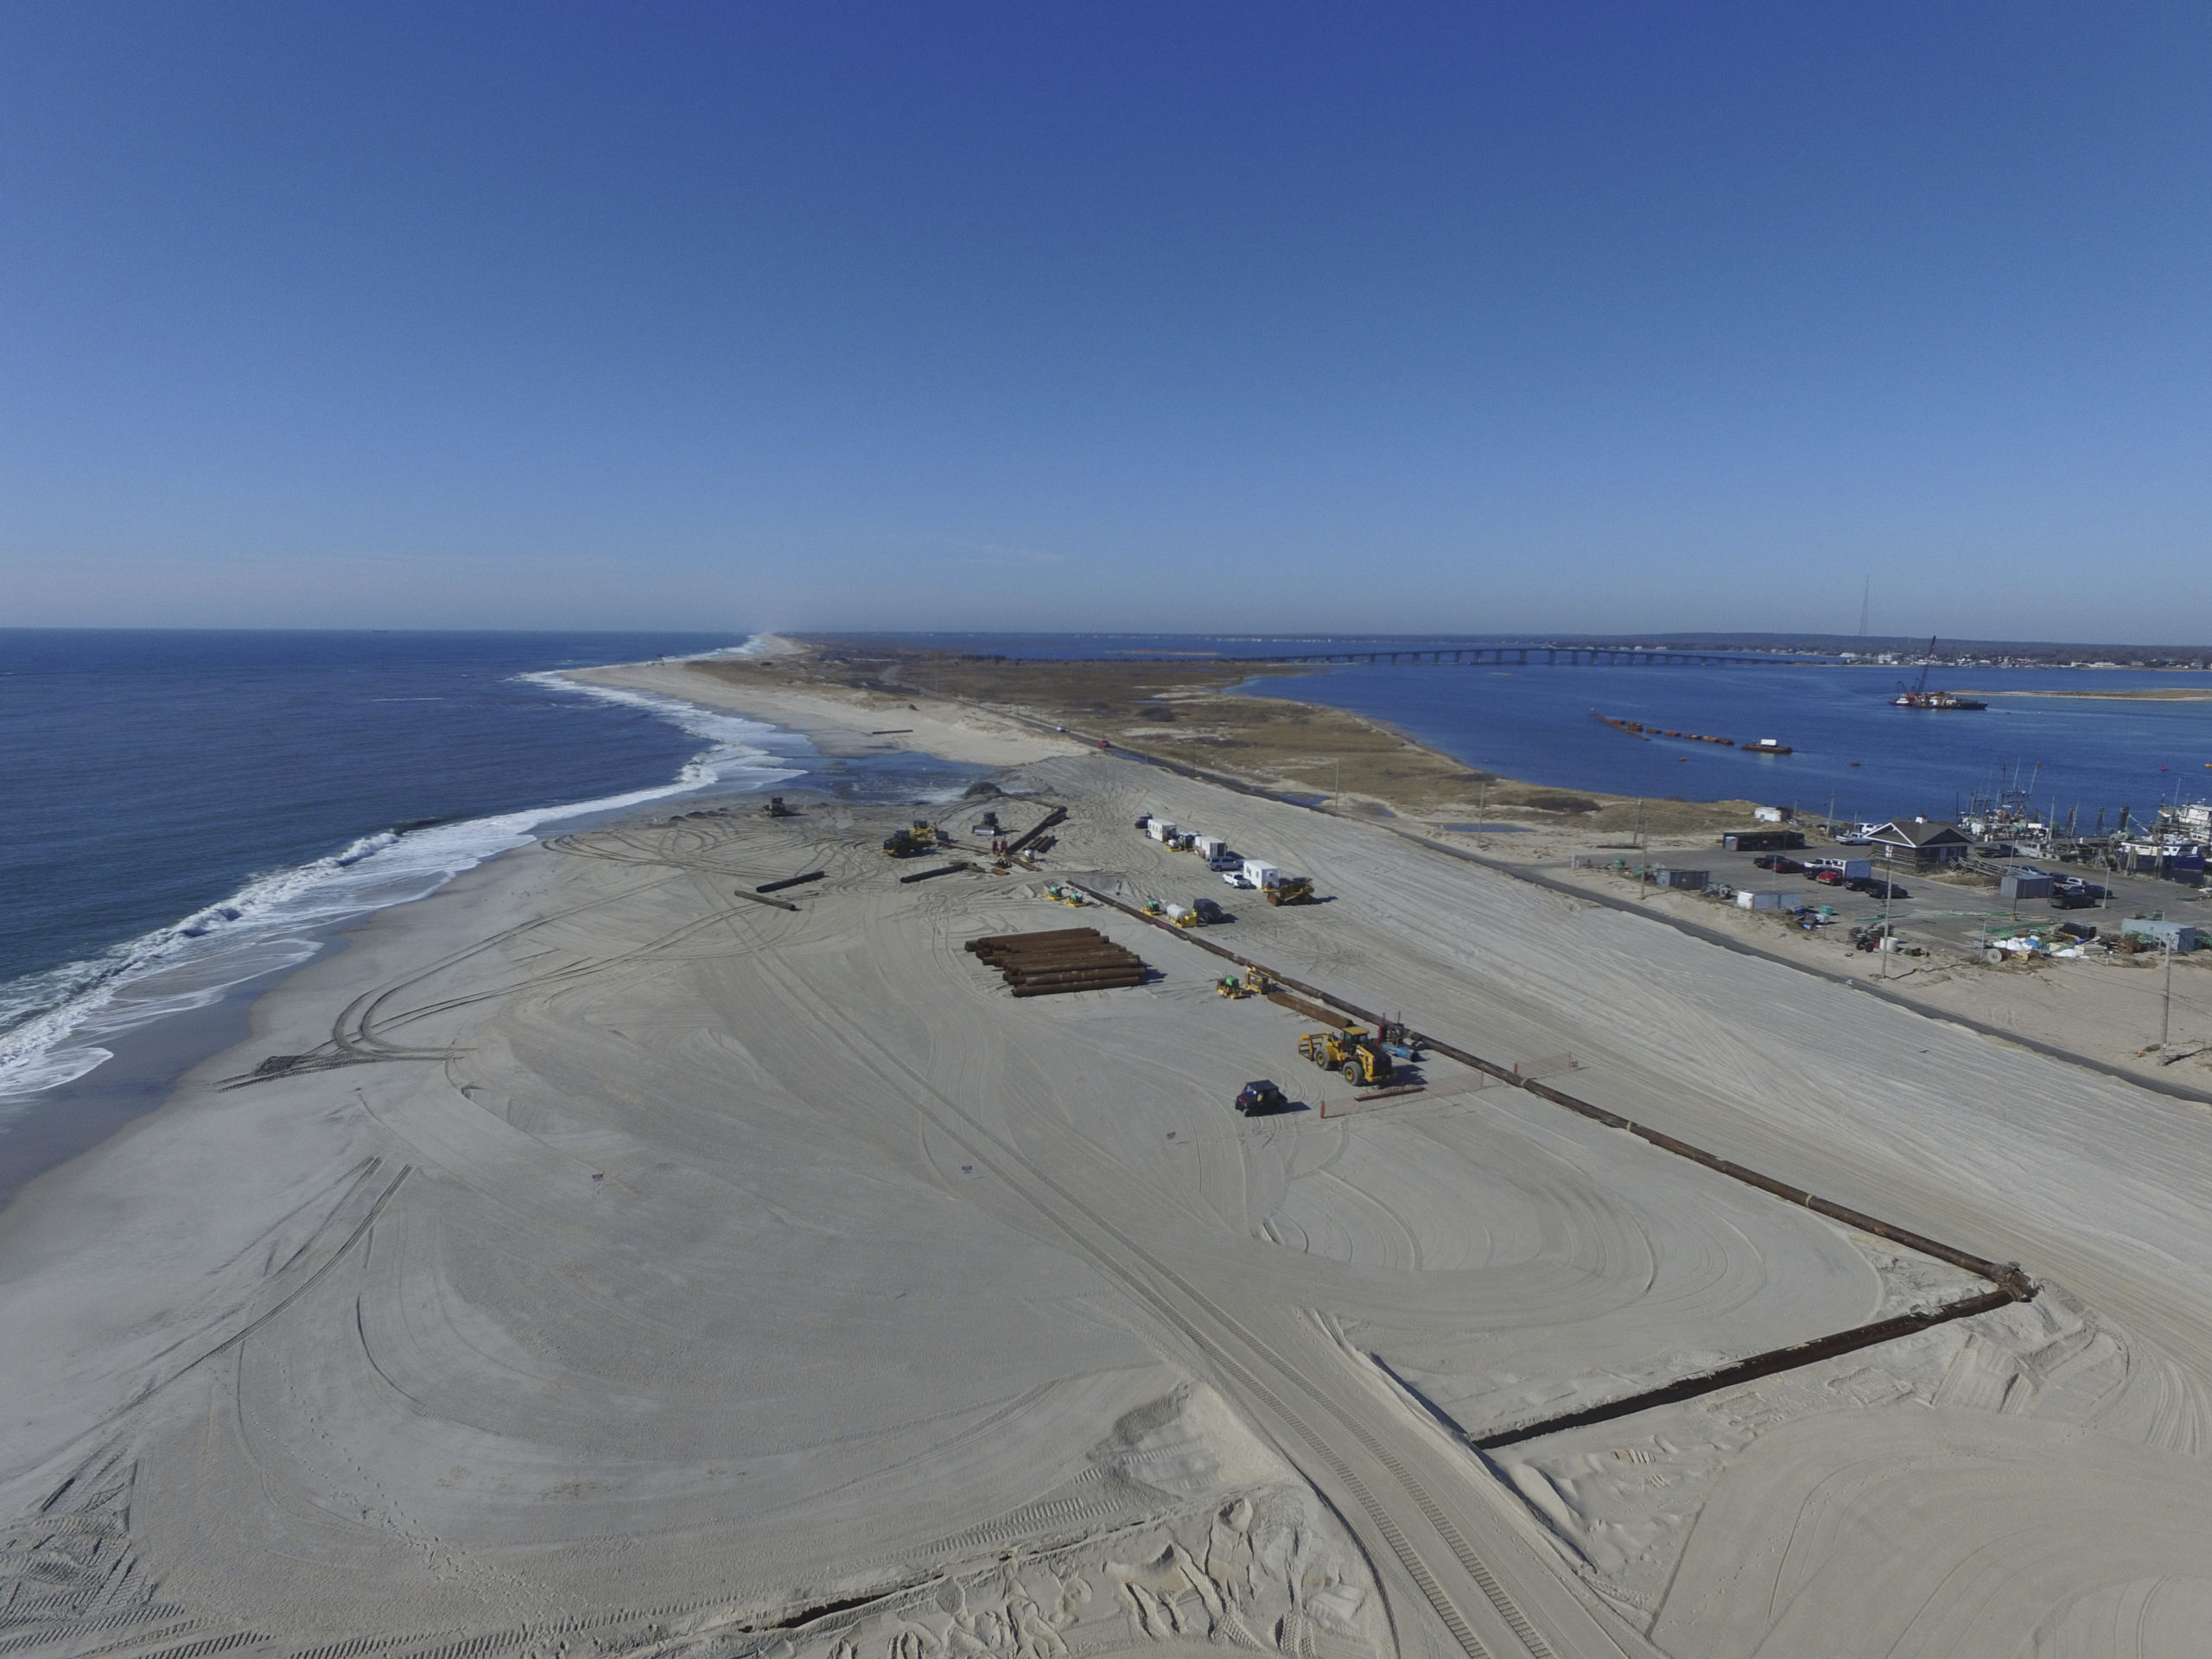 The federal Army Corps of Engineers told local officials this week that the South Fork has been bumped down the priority list for beach nourishment and will not see significant beach nourishment until 2023.